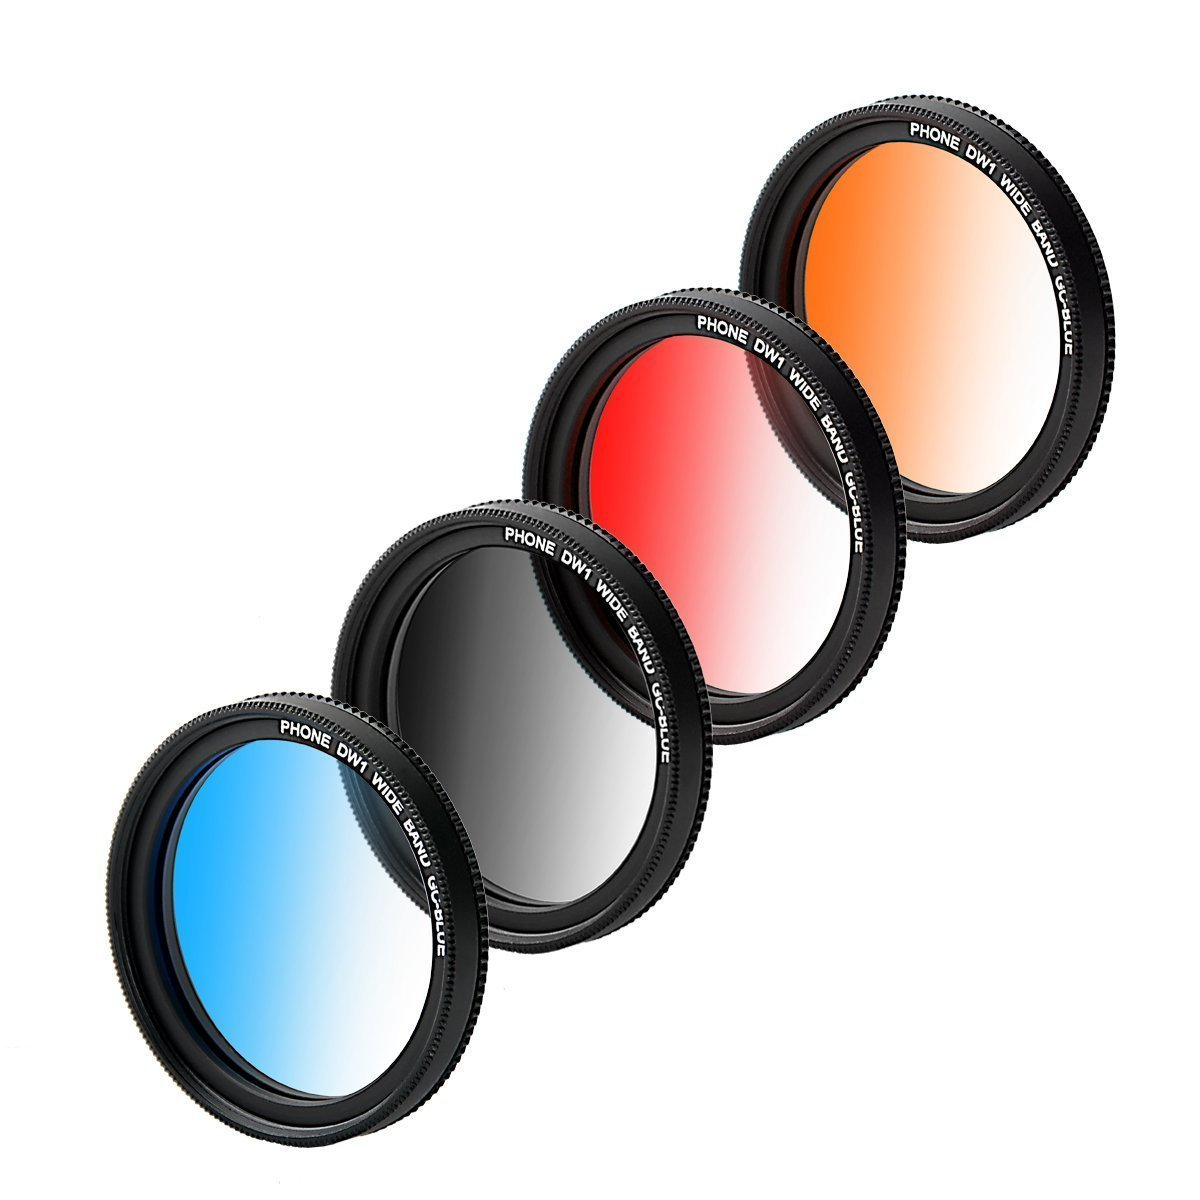 Zomei iPhone Graduated Lens Filter 37mm Professional 4 Pieces Camera Lens Filter Kit for iPhone 6S, 6S Plus, Samsung Galaxy, All Smartphones (Graduated Blue/Gray/Orange/Red)